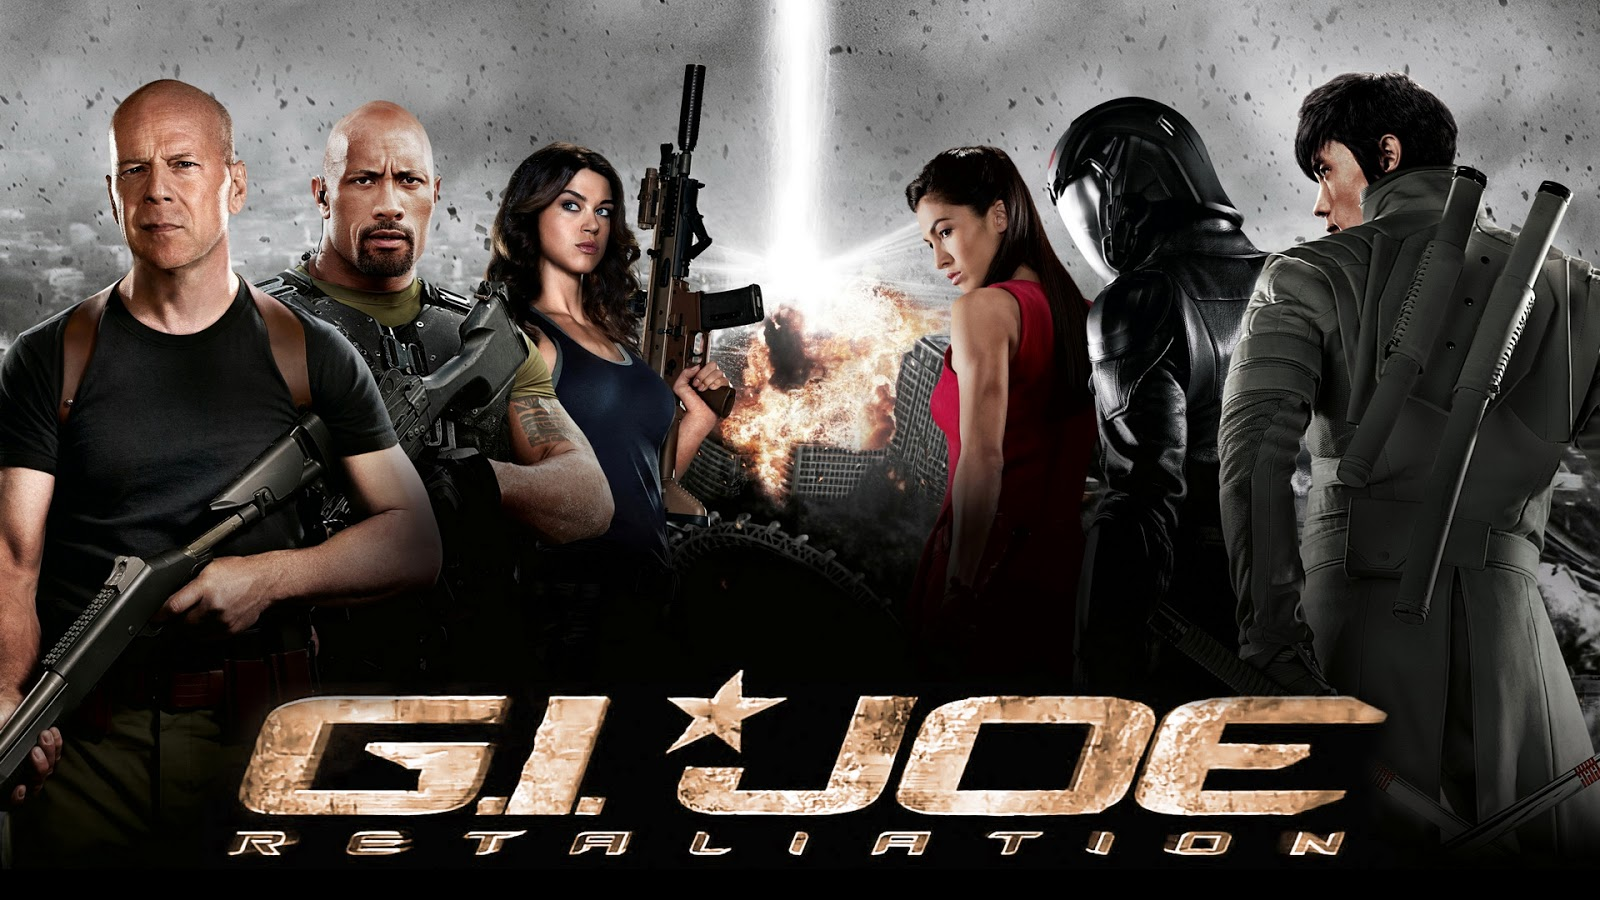 maxwallon: Gi Joe Retaliation Hd Wallpaper